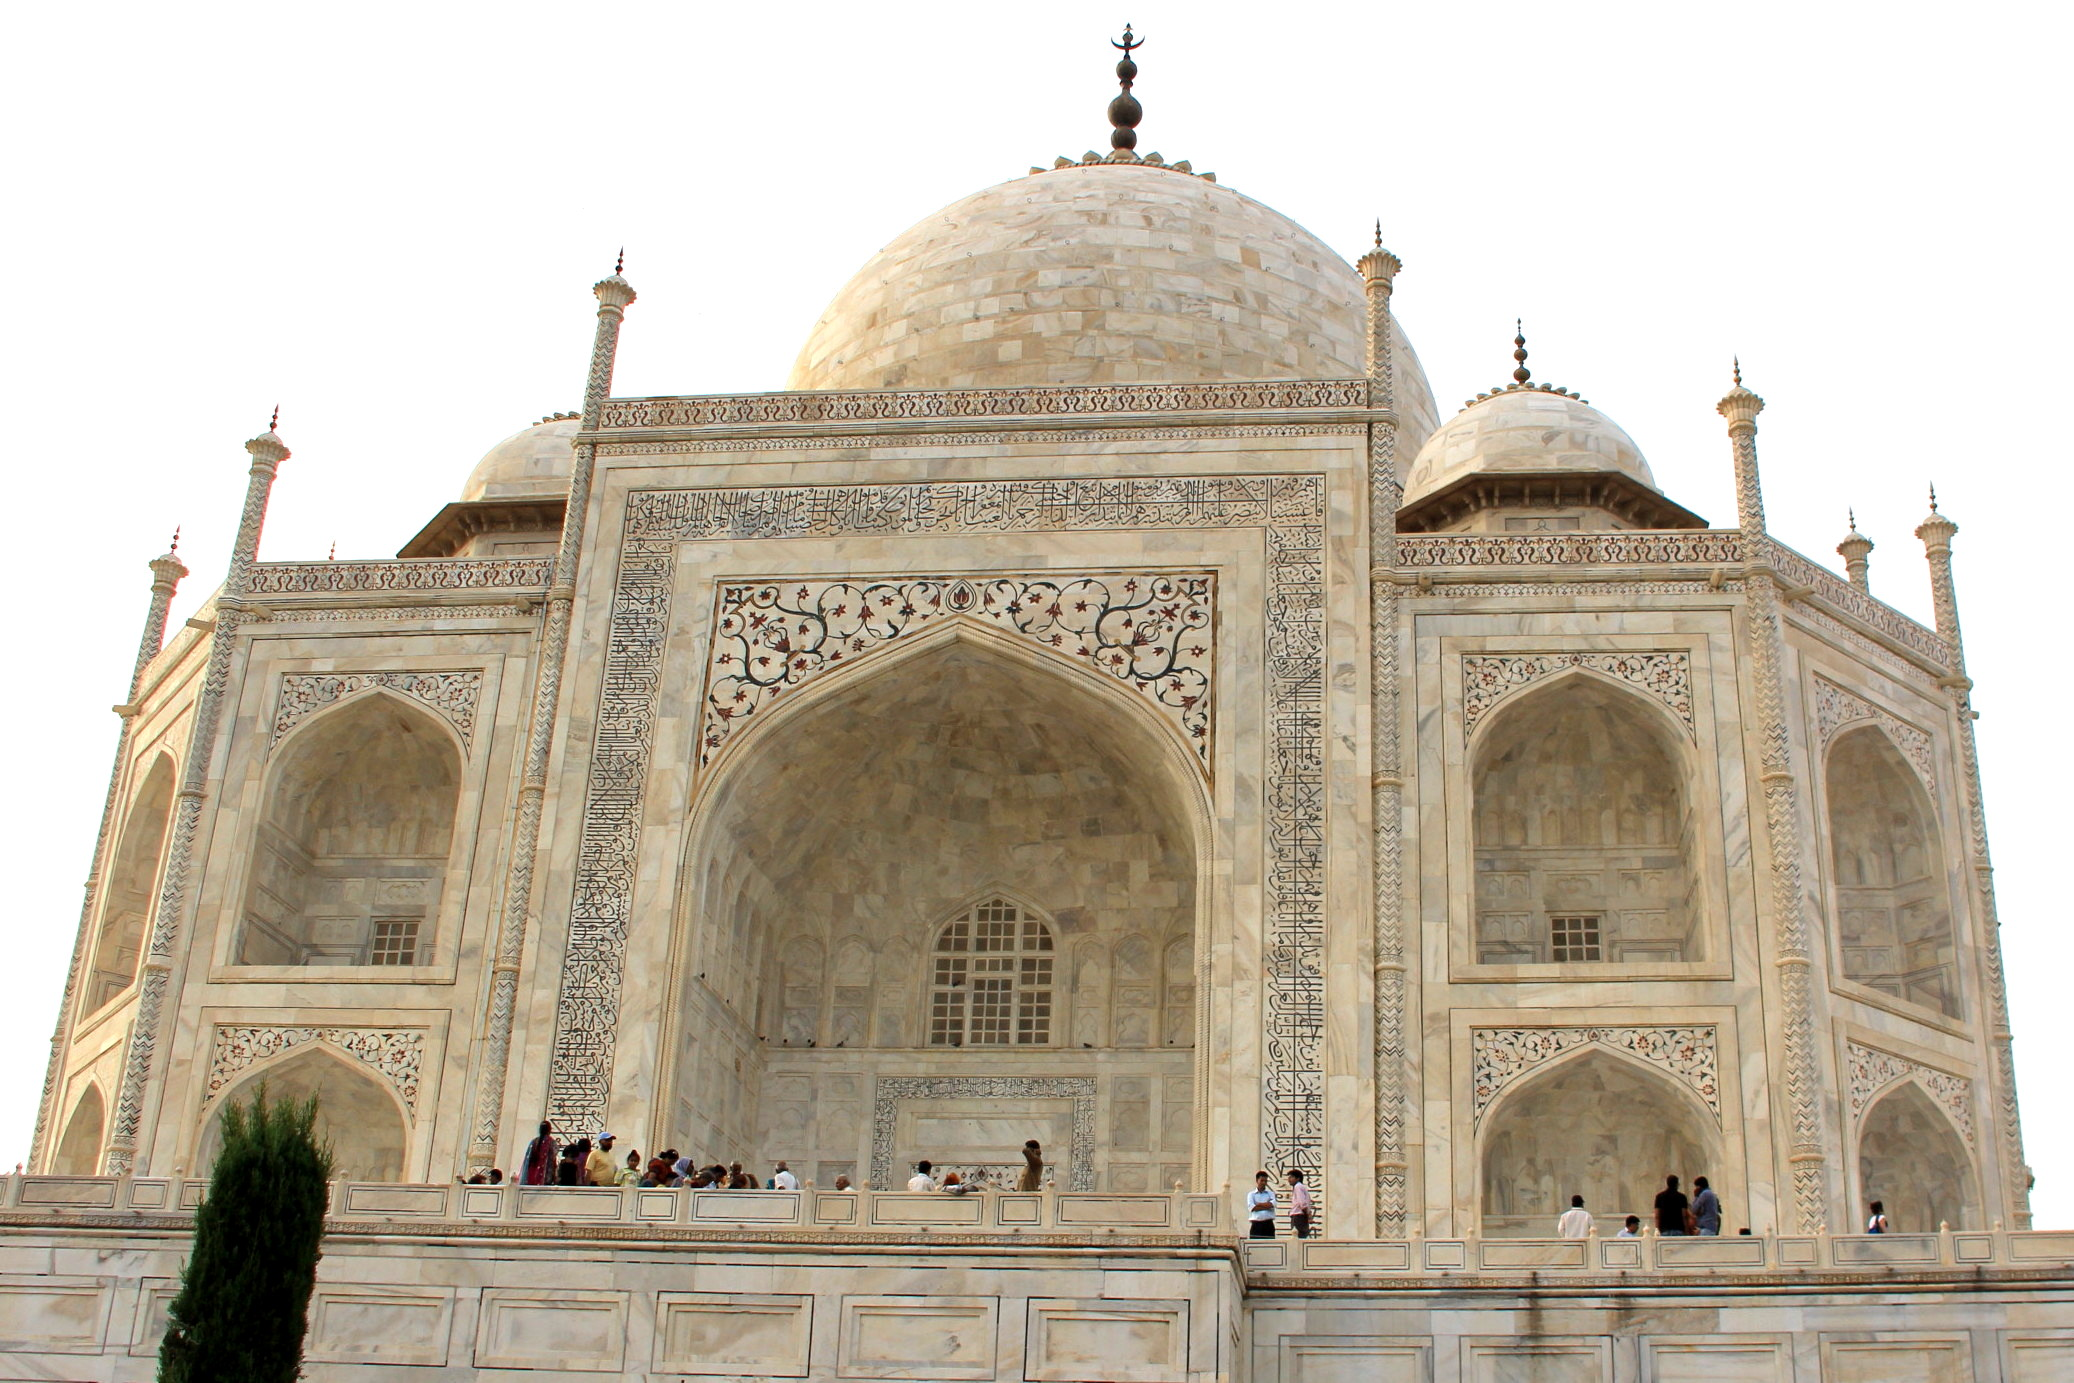 Close up view of Taj Mahal, Agra, India